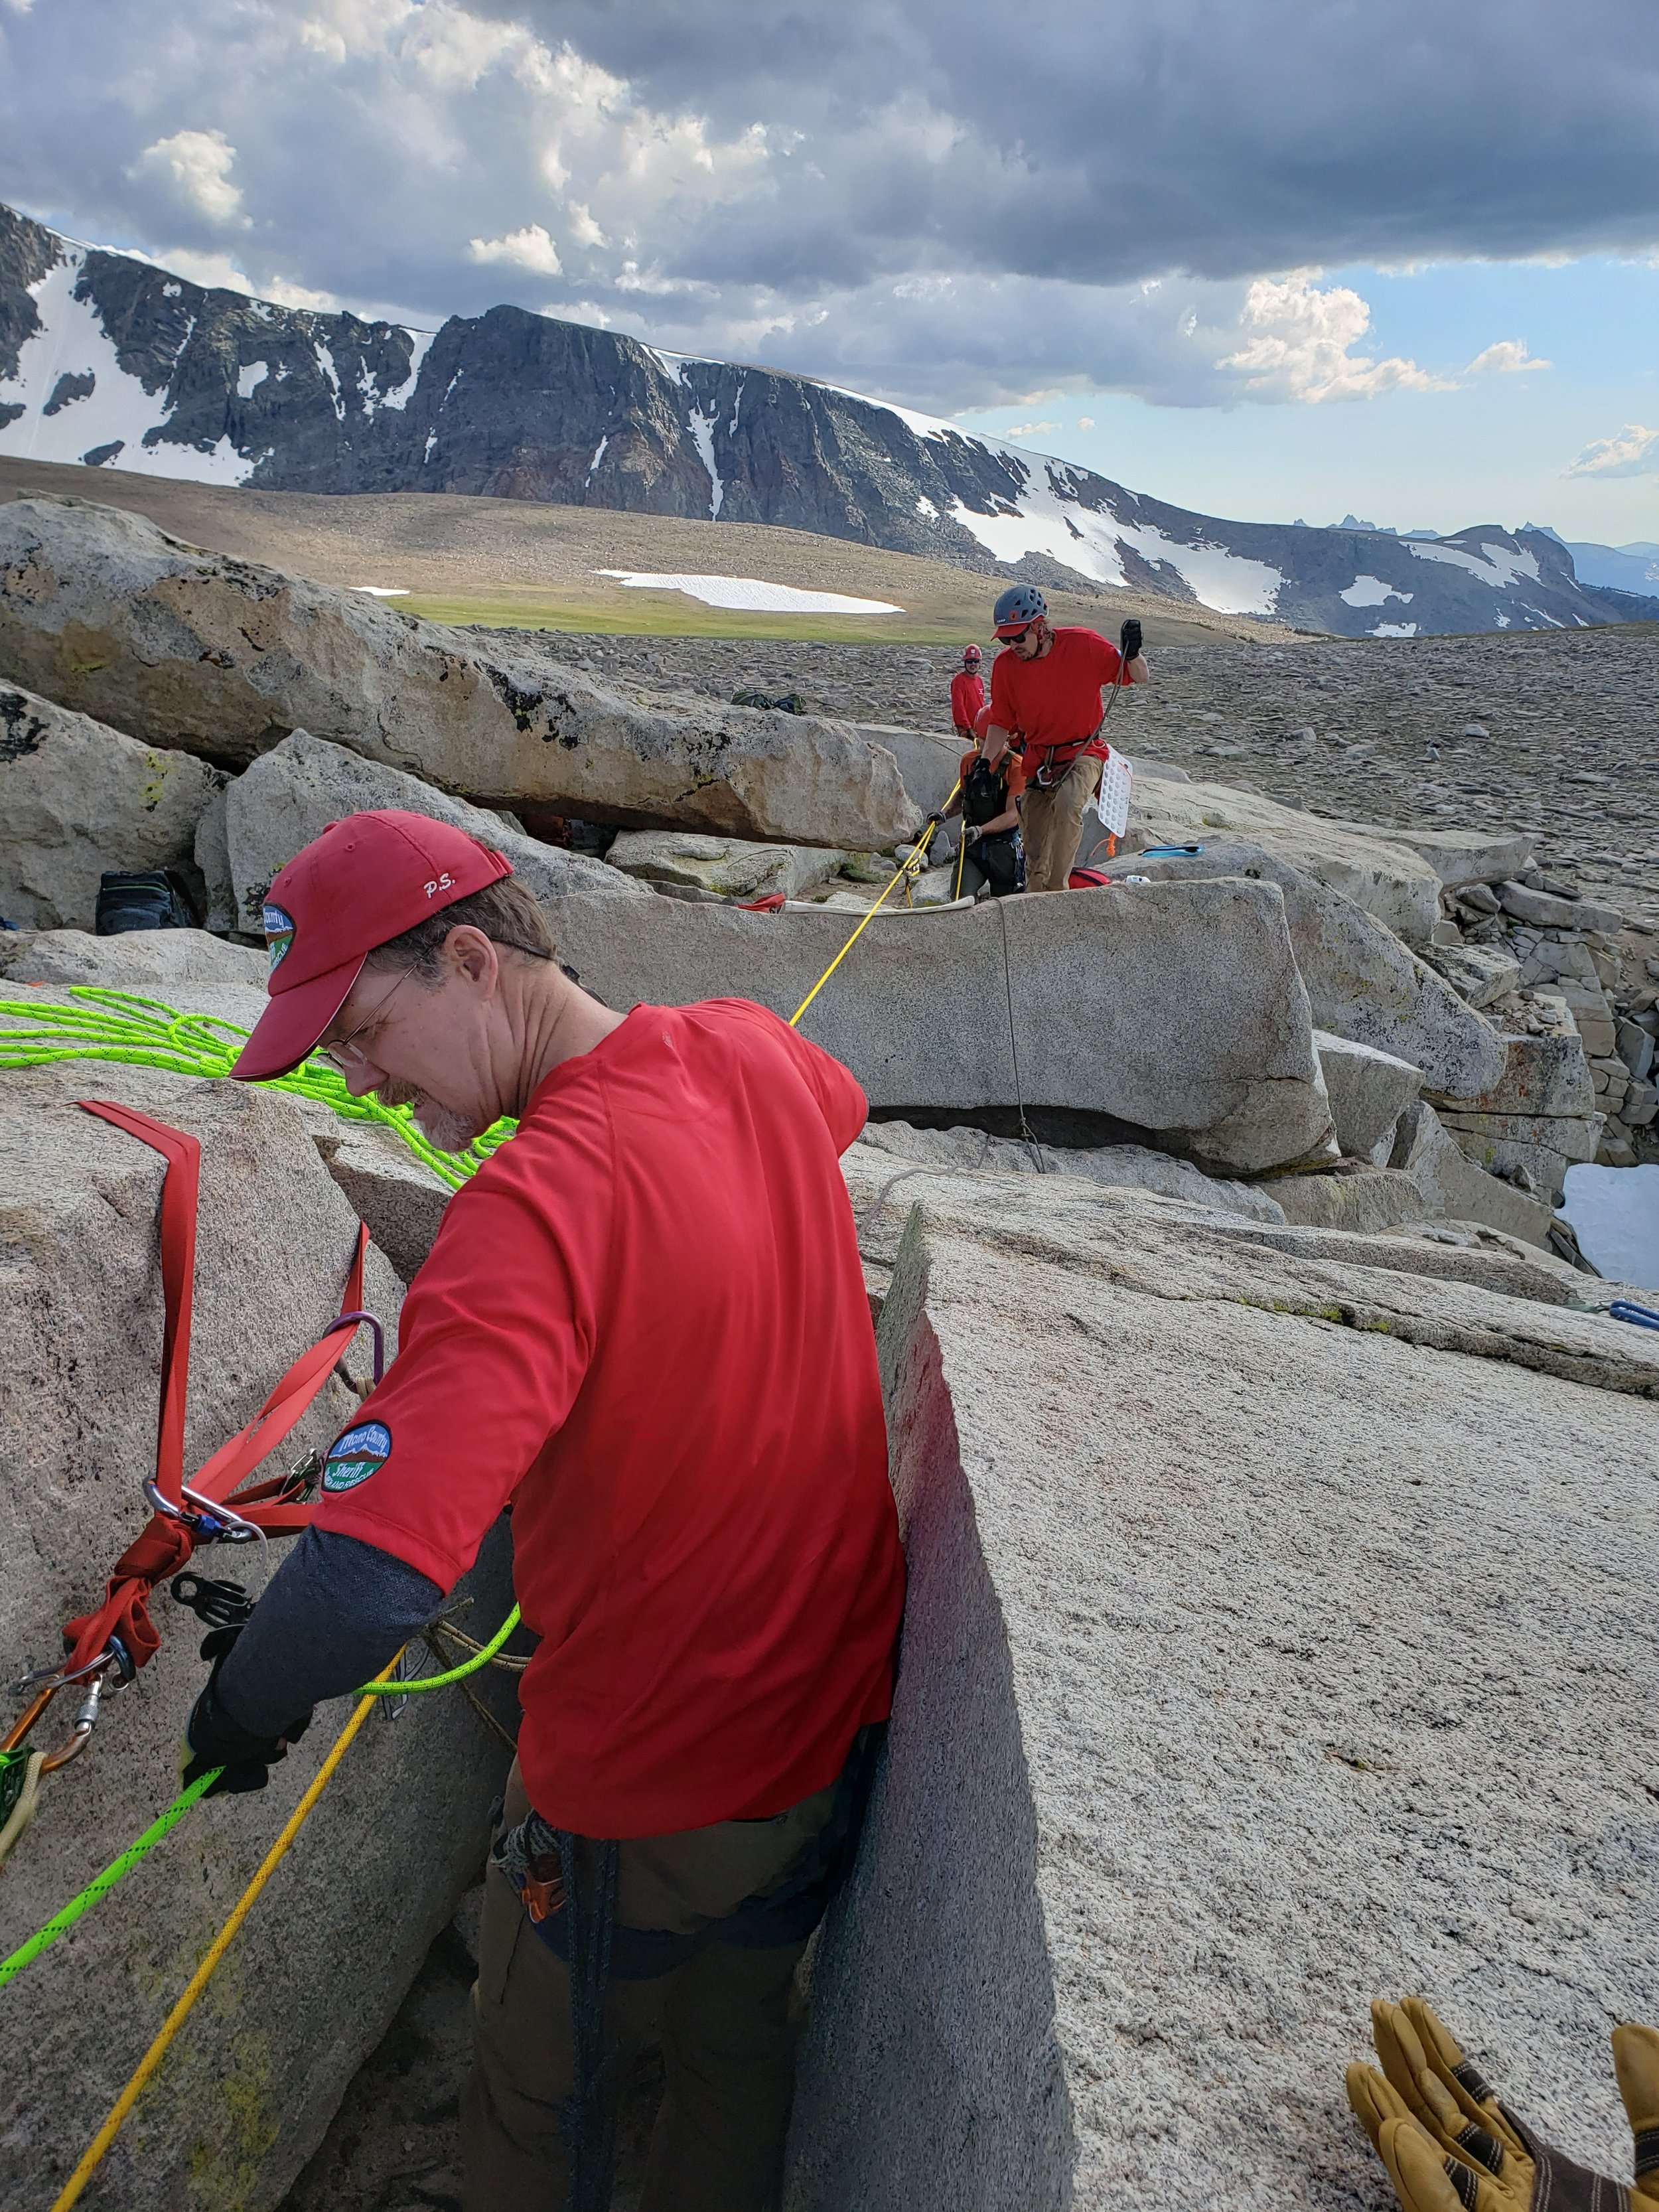 Manning the belay before conversion to twin-tension system. Image by B. Beck